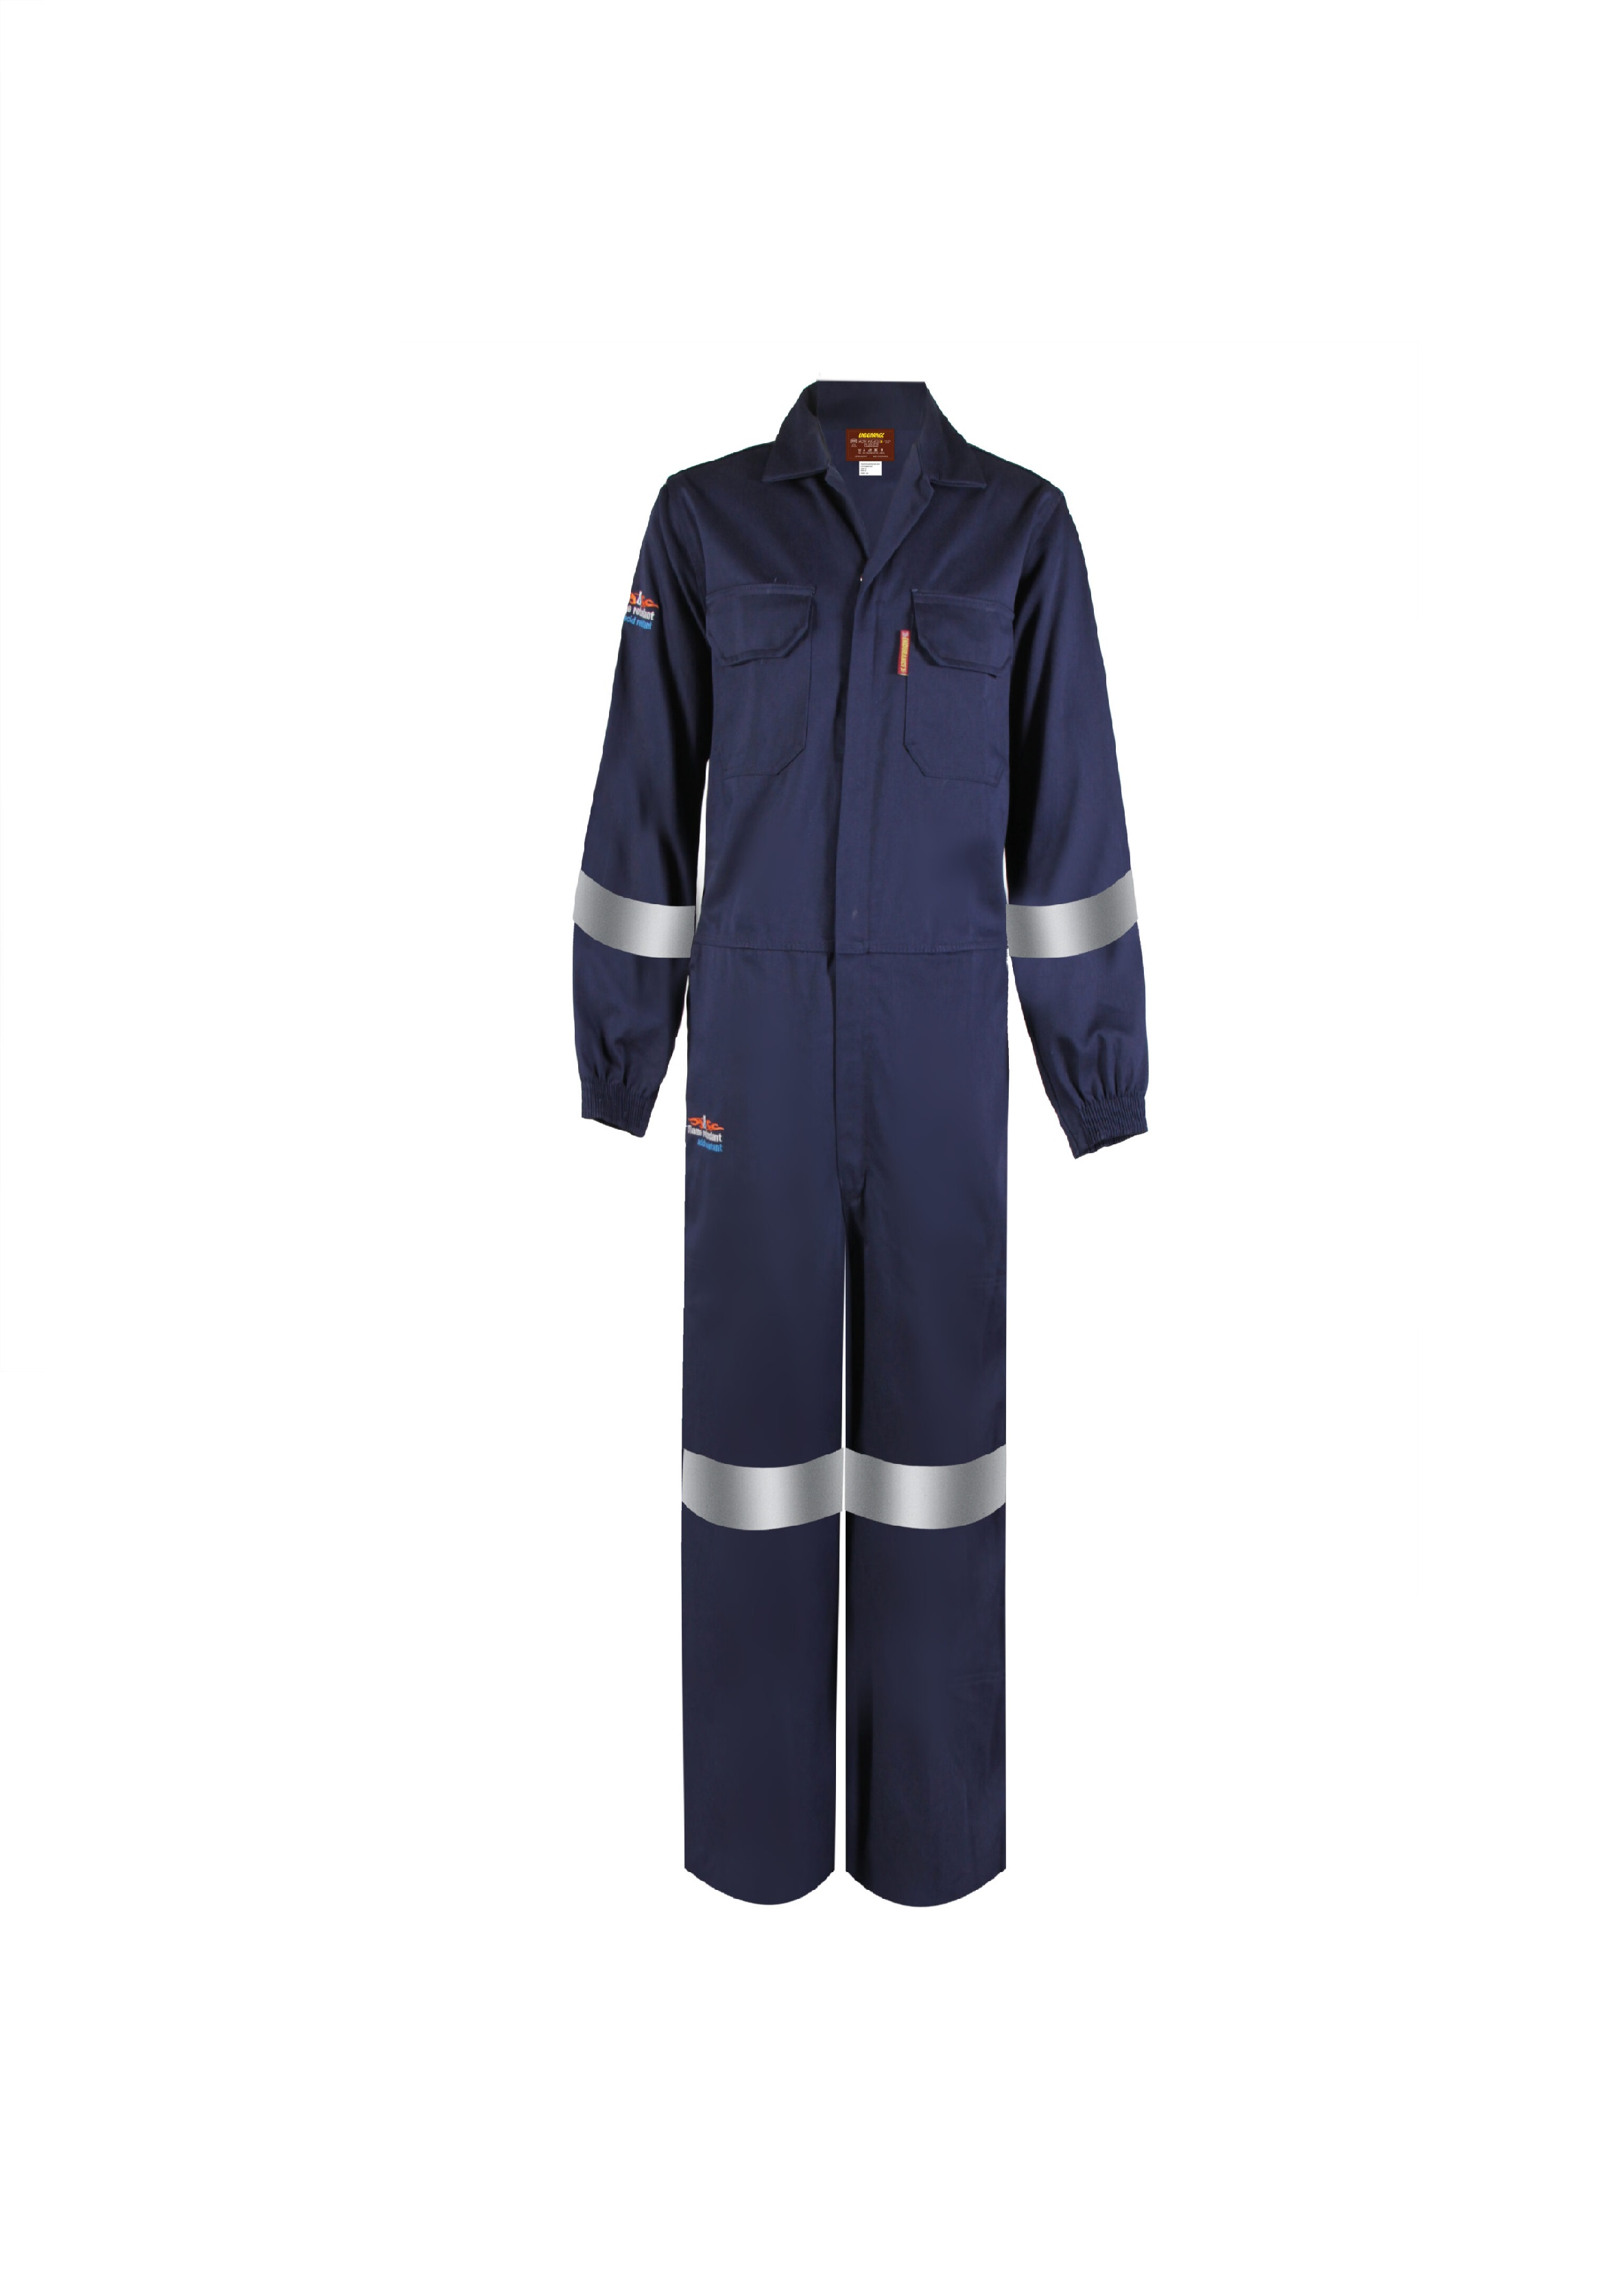 ENDURANCE Flame & Acid SABS Approved Boilersuit Size 32